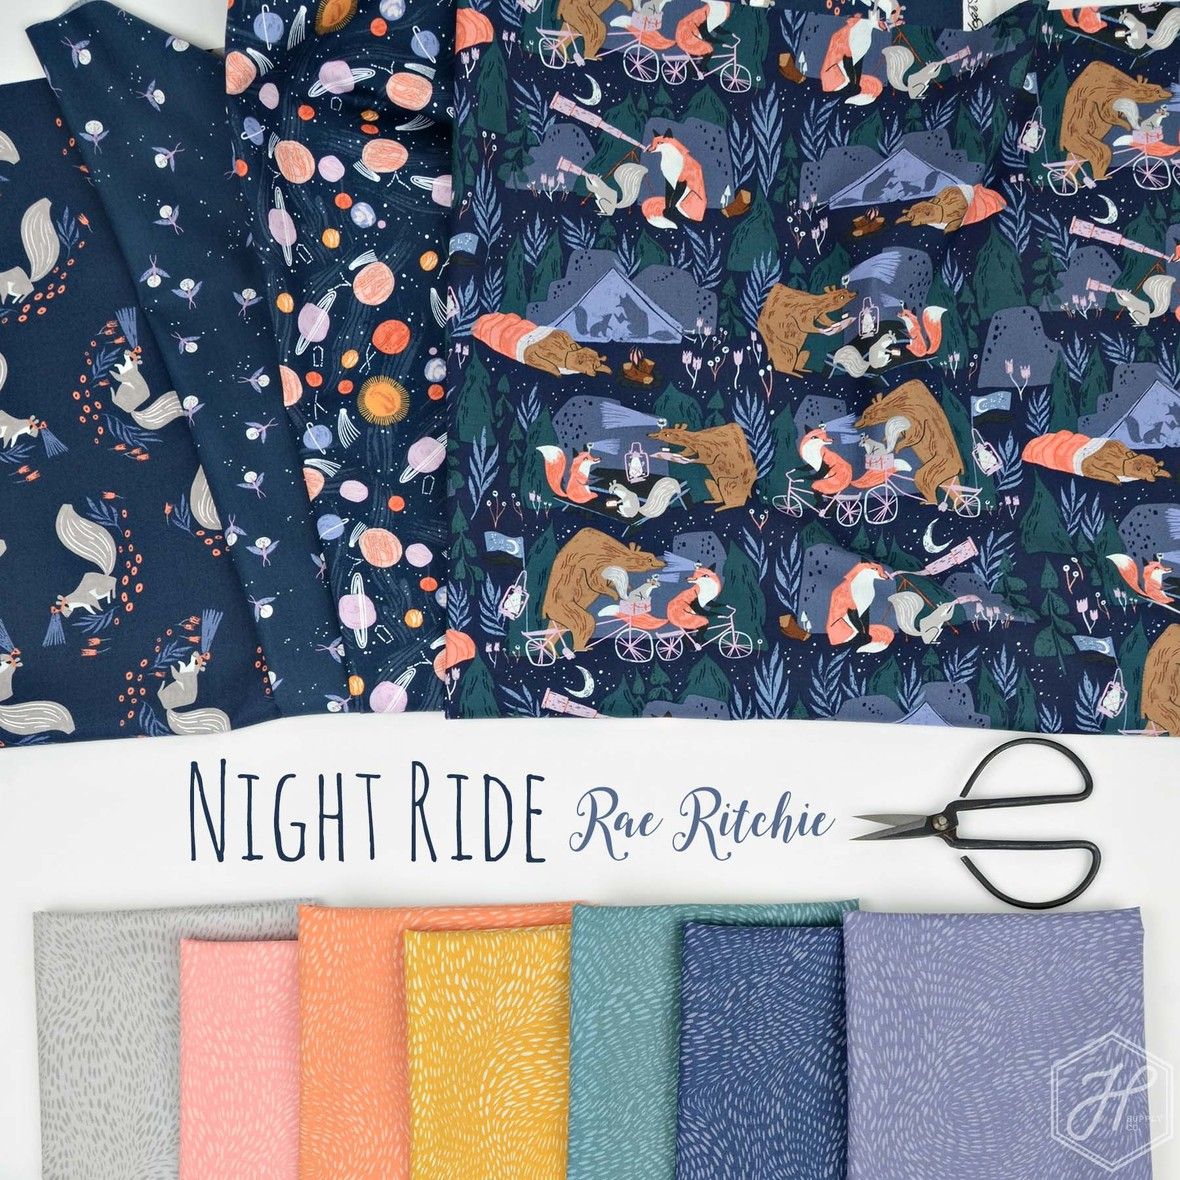 Rae Ritchie Night Ride fabric for Dear Stella at Hawthorne Supply Co